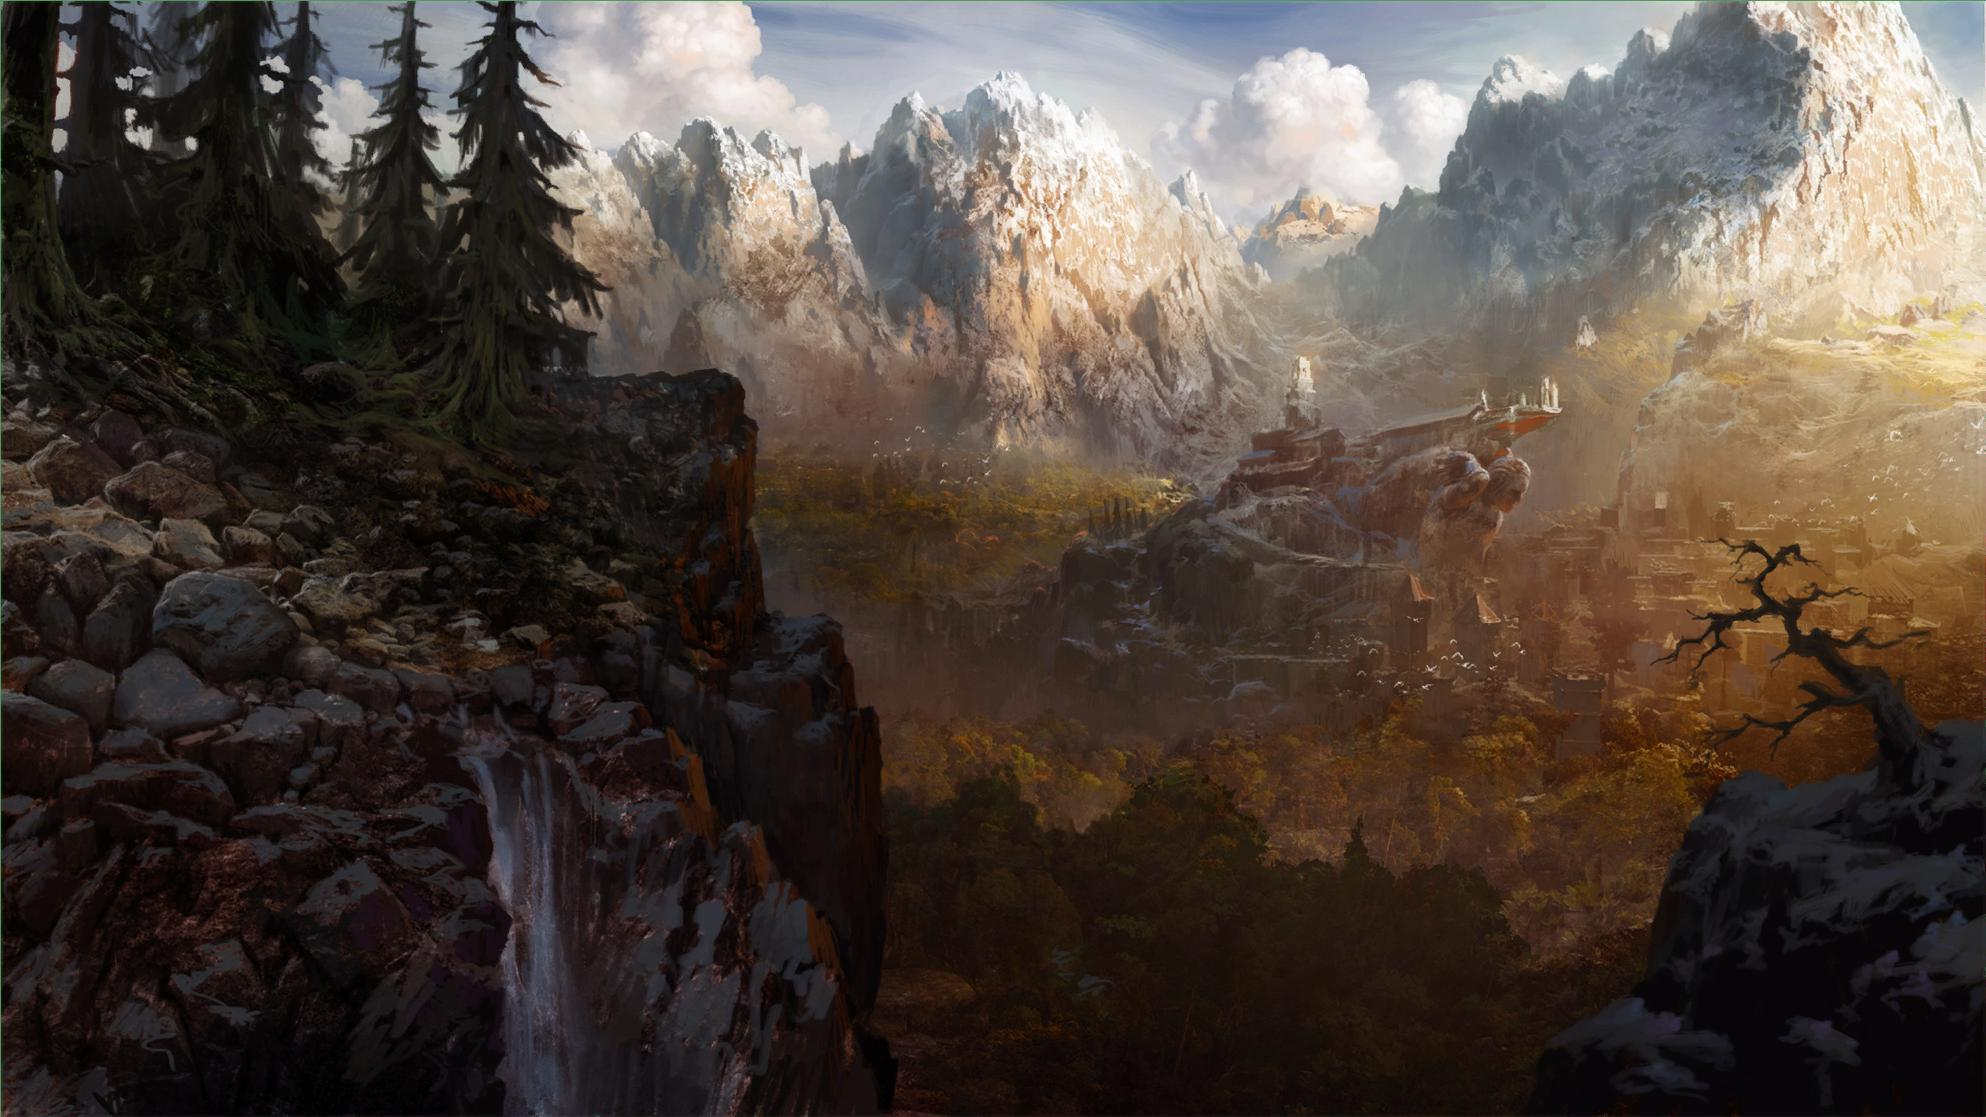 Desktop Wallpaper Fall Out Enderal Nominated As Quot Fan Creation Of The Year Quot At The